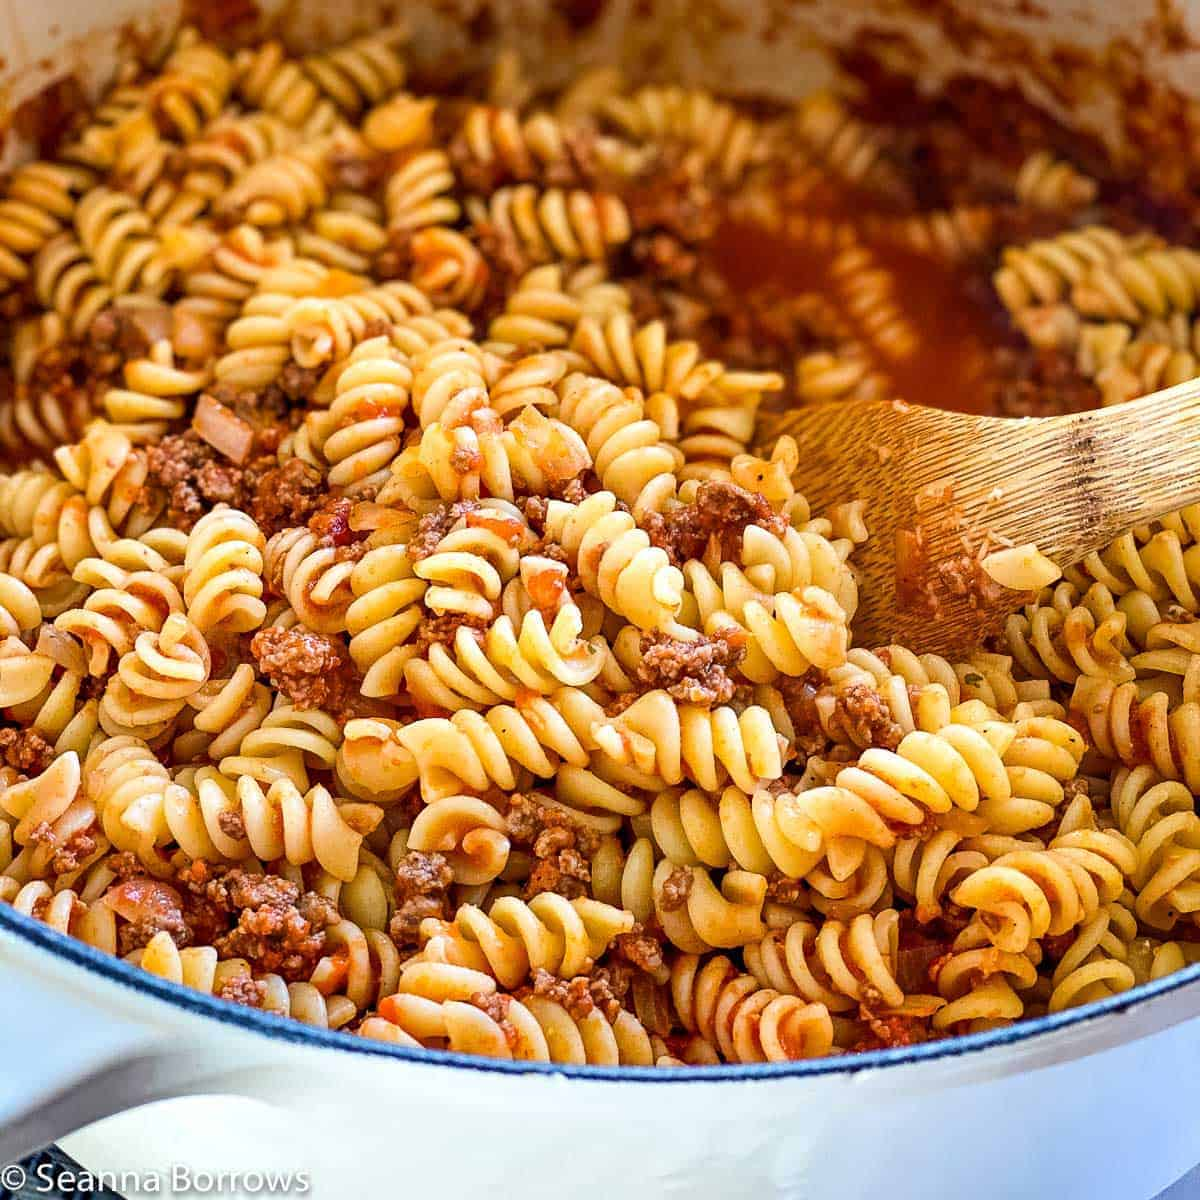 Ground Bison Pasta made with rotini pictured in off white Le Creuset dutch oven with wooden spoon gently lifting up some of the pasta.